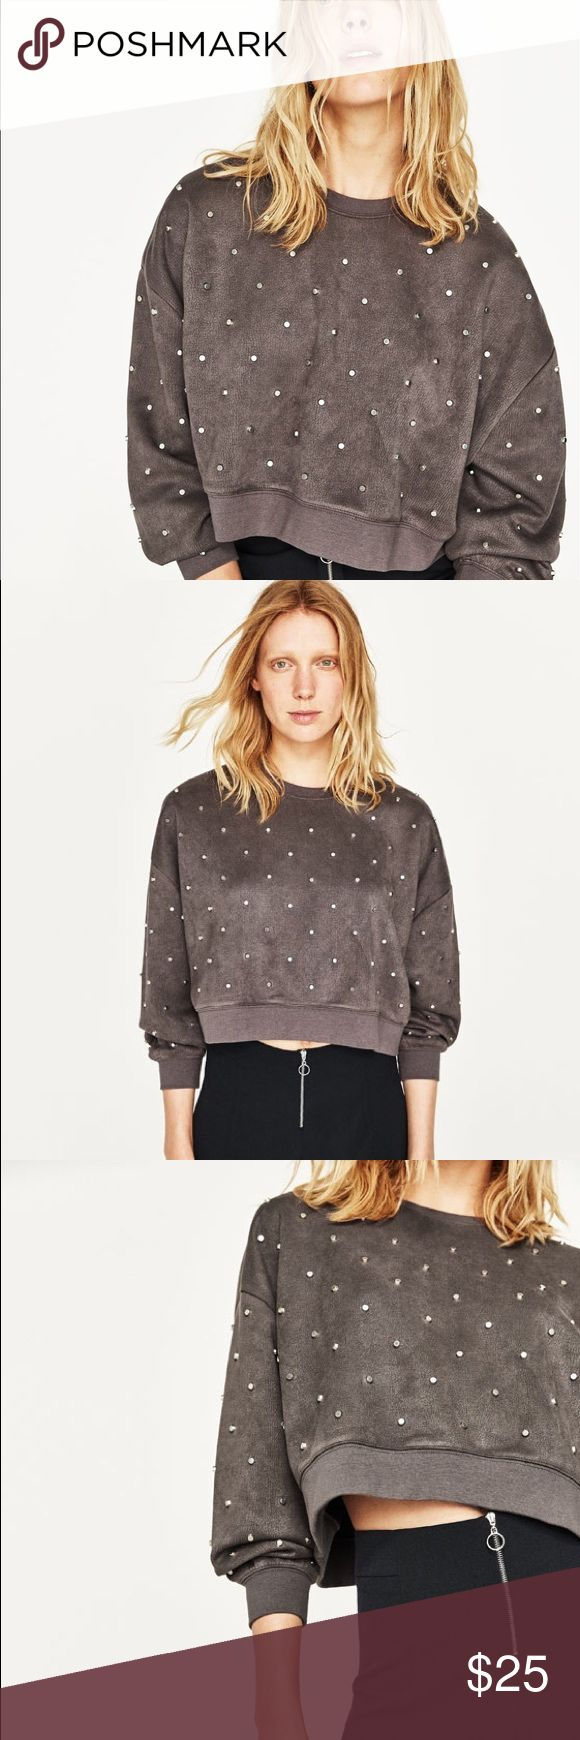 NWOT Zara sweatshirt with metallic detail! I removed the tags when purchased but have never worn this. Sitting in my closet for a month and sold out online! Extremely soft and amazing quality. Heavier weight. Slightly cropped but not too much. Slouchy fit. Ask away:) (grayish-brown color) (has a velvety feel) Zara Tops Sweatshirts & Hoodies